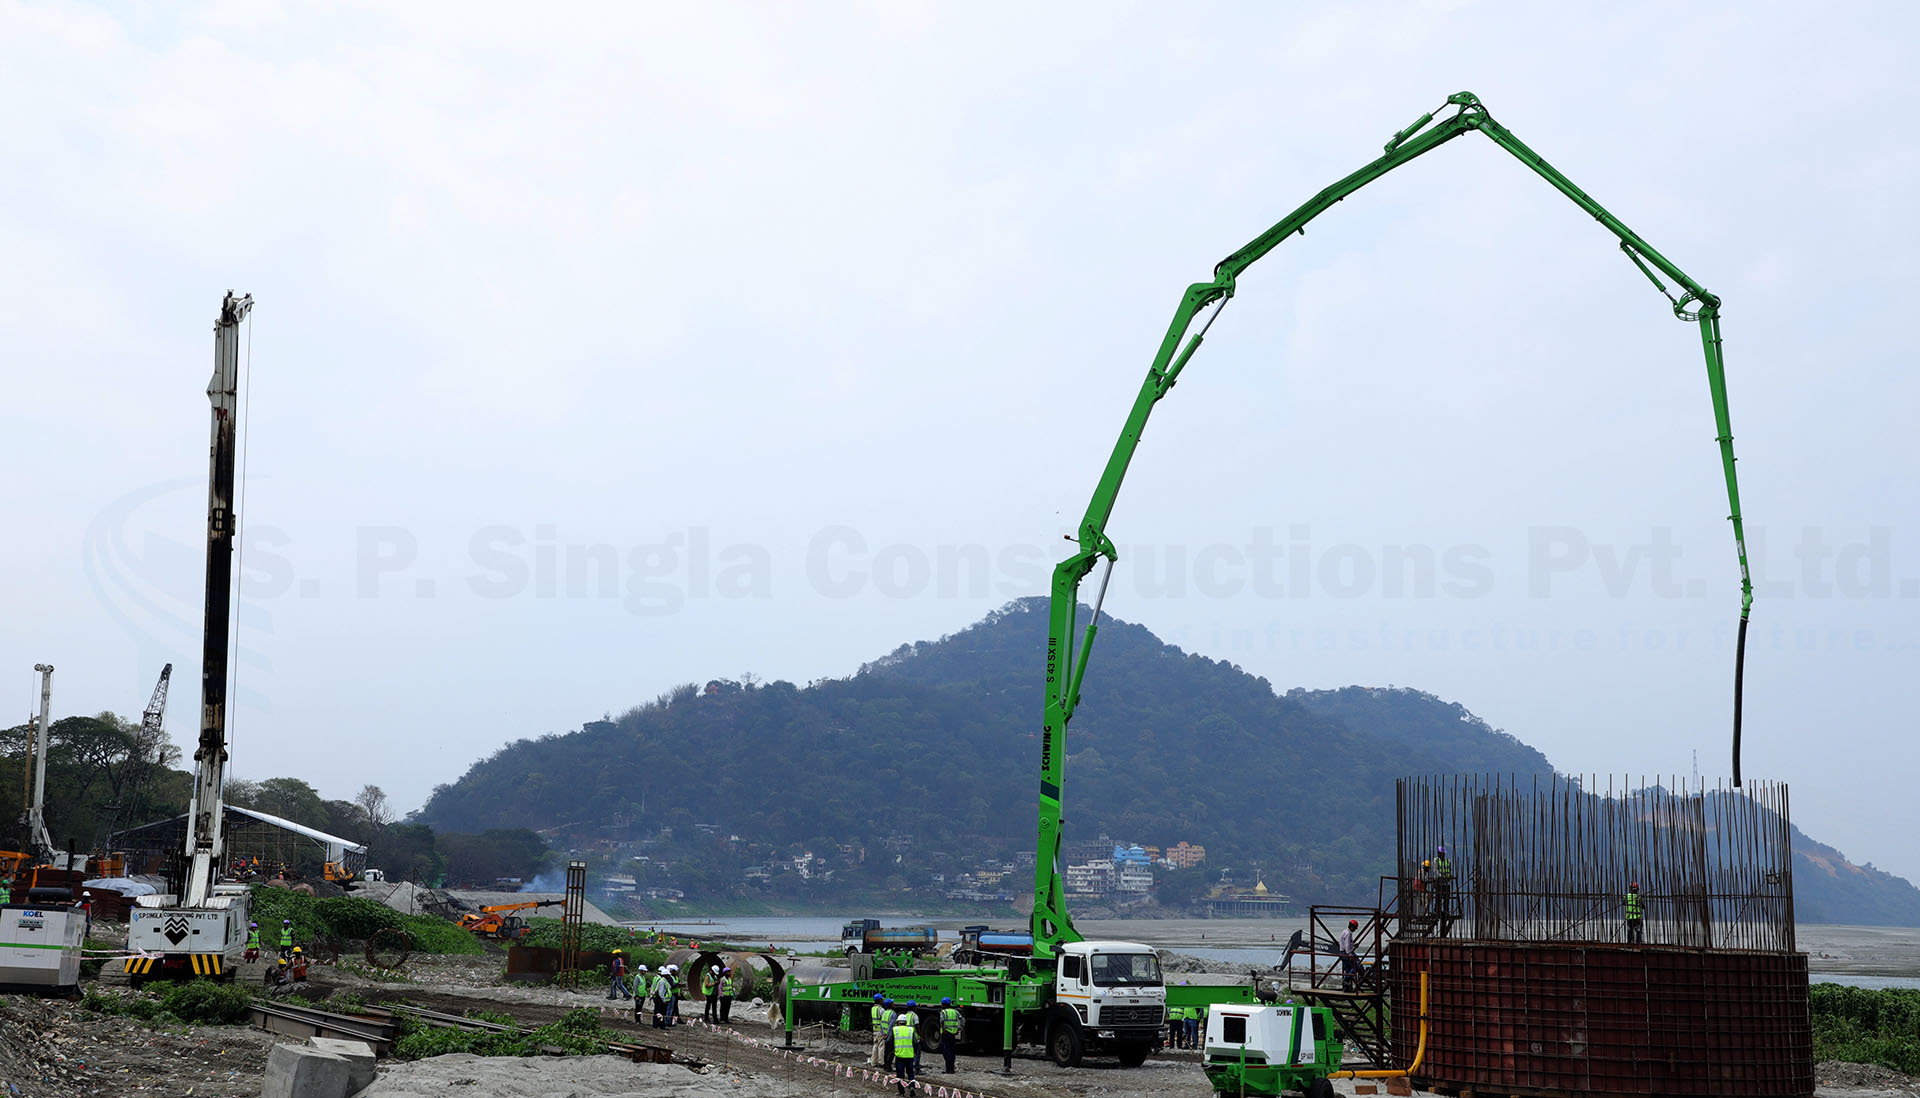 Extradosed PSC Bridge across river Brahmputra connecting Guwahati and North Guwahati in Assam